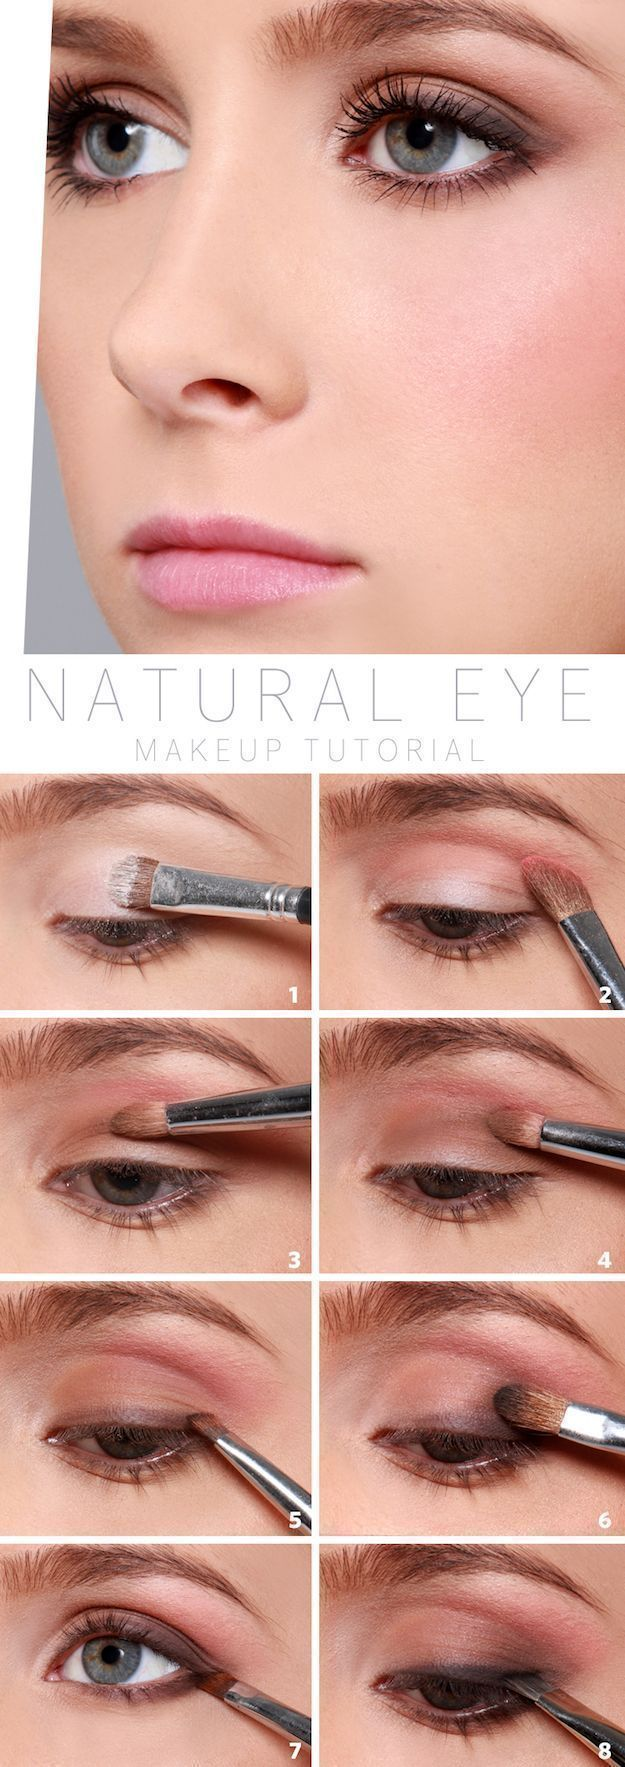 Wedding Makeup Ideas for Brides - Natural Eye Makeup Tutorial - Romantic make up ideas for the wedding - Natural and Airbrush techniques that look great with blue, green and brown eyes - rusti evening glow looks - https://www.thegoddess.com/wedding-makeup-for-brides #naturalweddingmakeup #greeneyemakeup #naturalmakeuplooks #makeupforbrowneyes #naturaleyemakeup #weddingmakeup